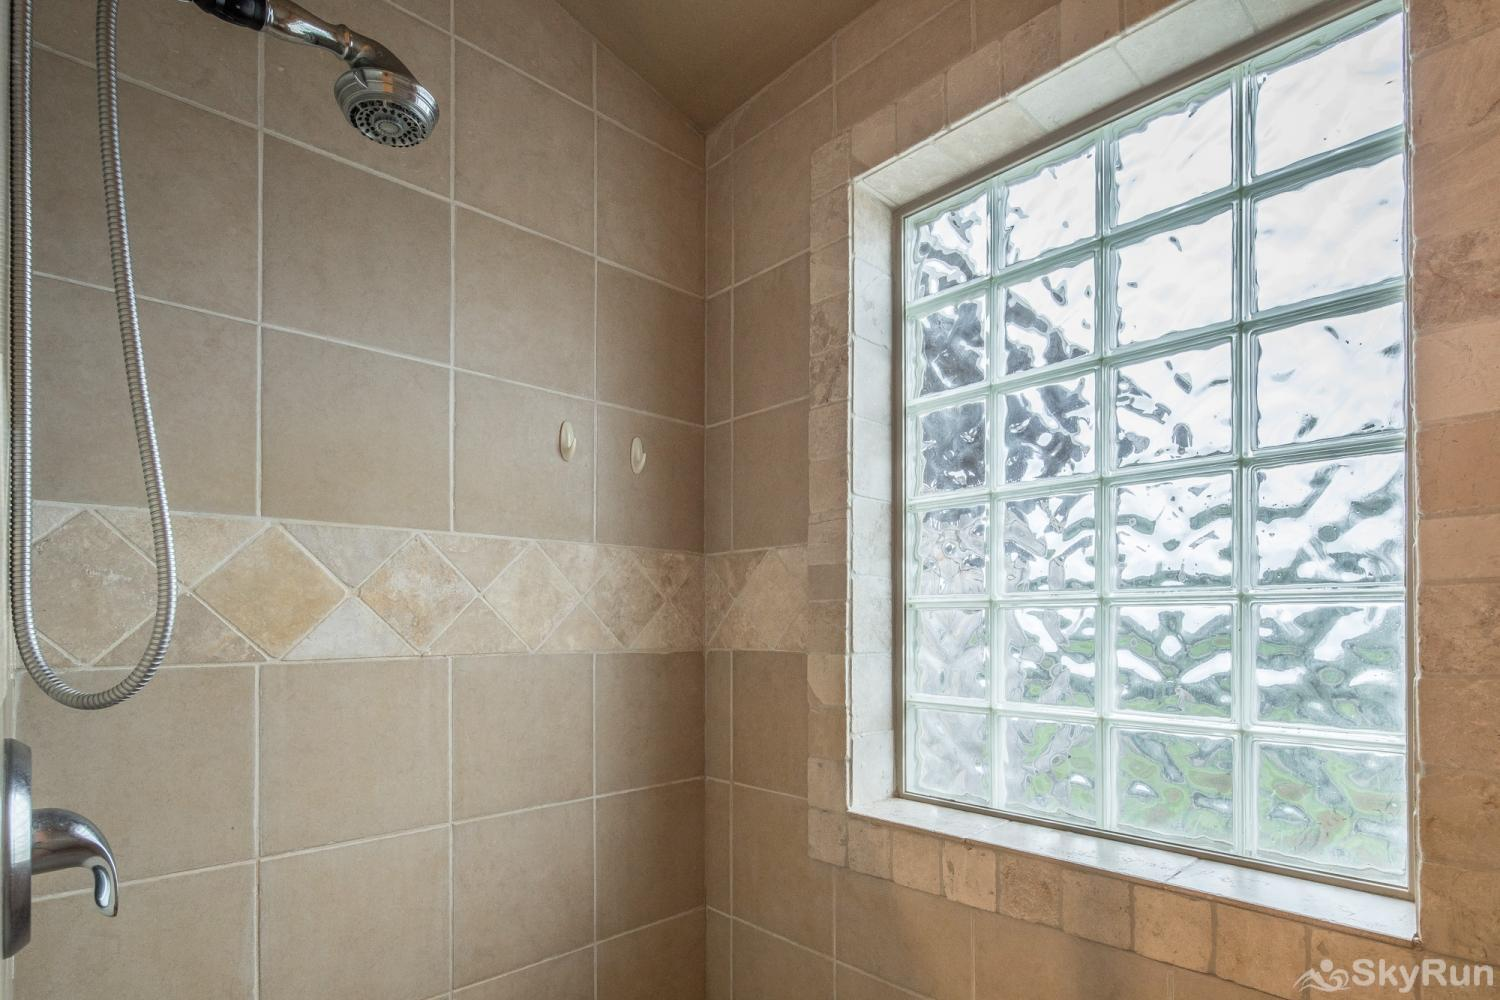 ROCK 'N' WOOD Walk-in Shower in Master Bathroom